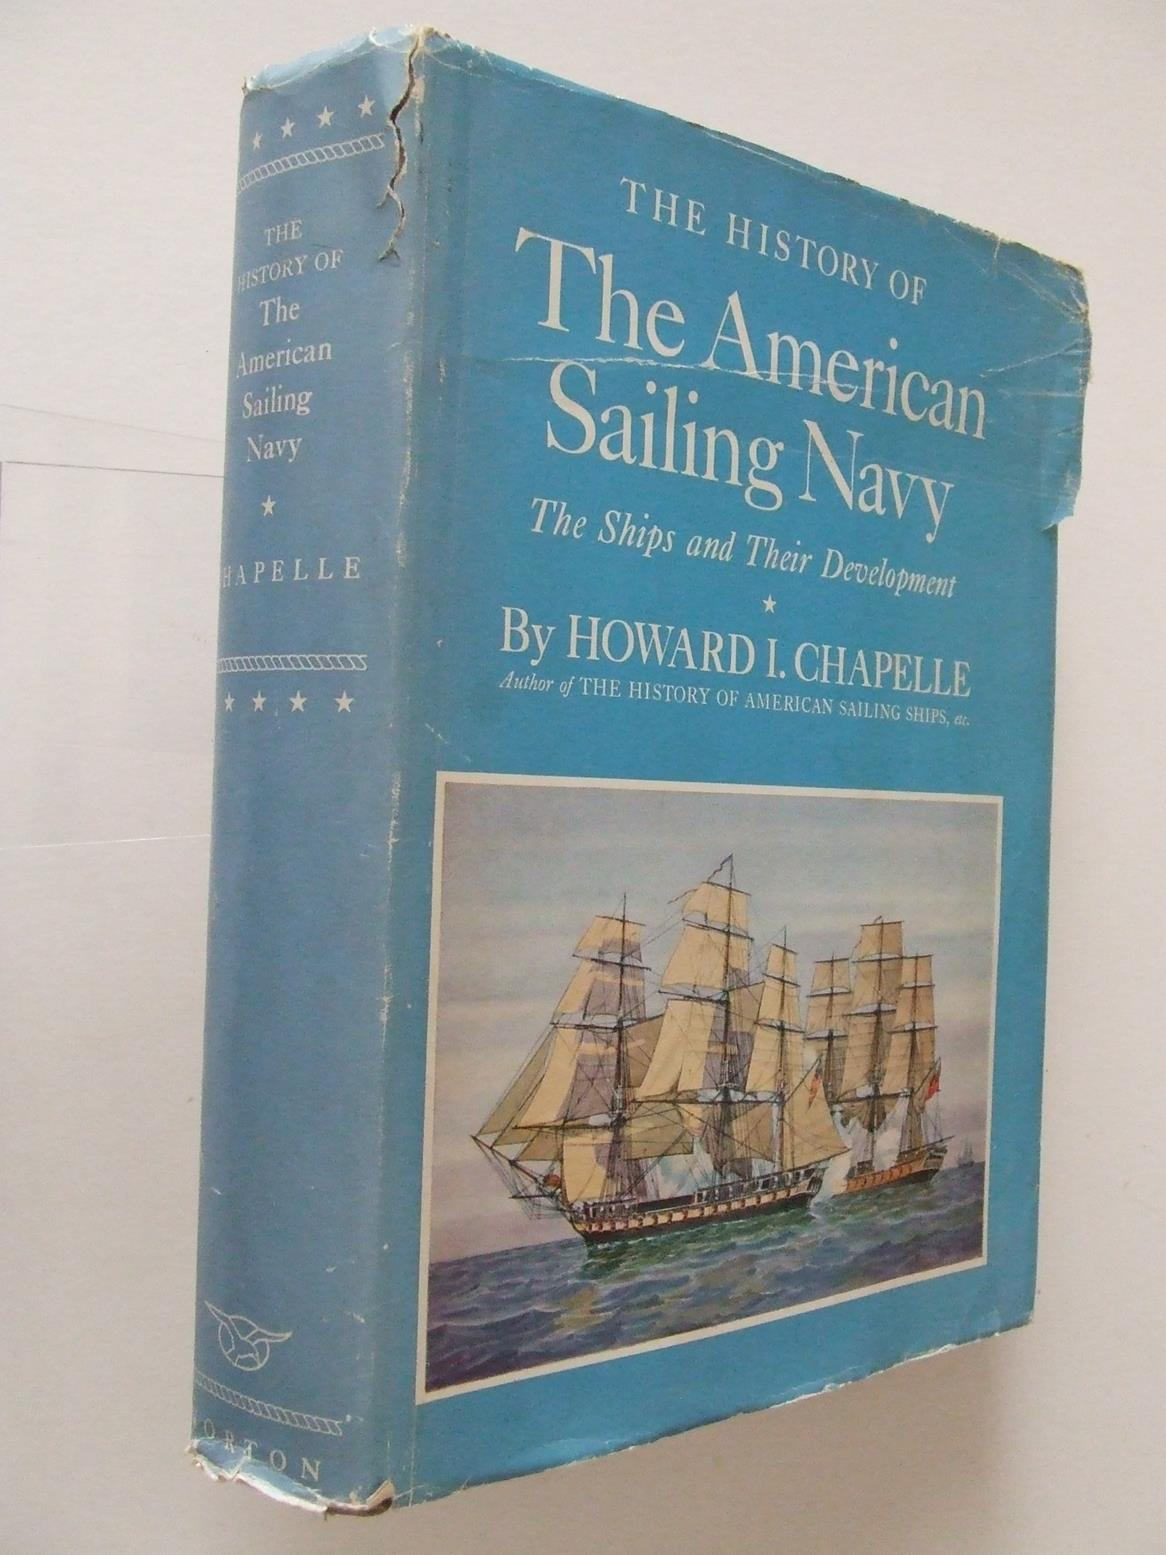 The History of the American Sailing Navy, the ships and their development